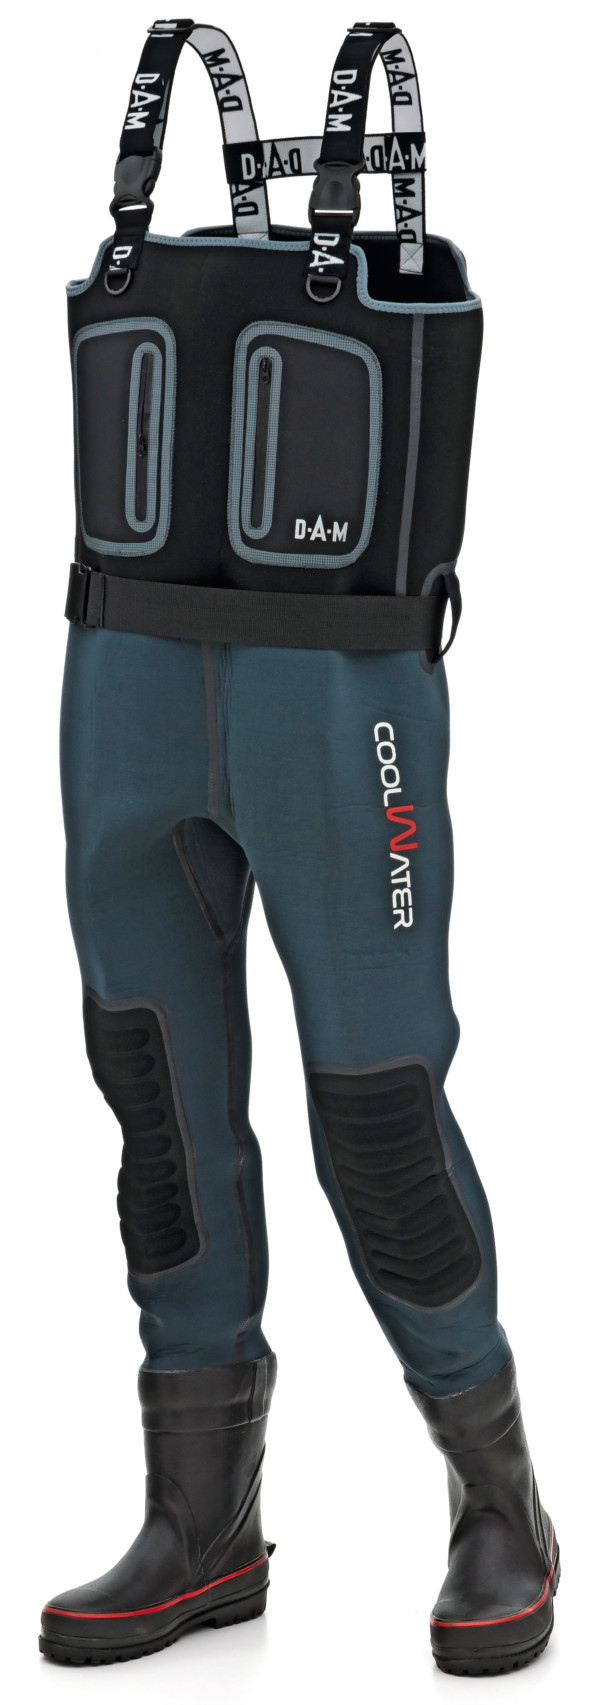 DAM Coolwater Waders, 5 mm neoprene! (available in all sizes)